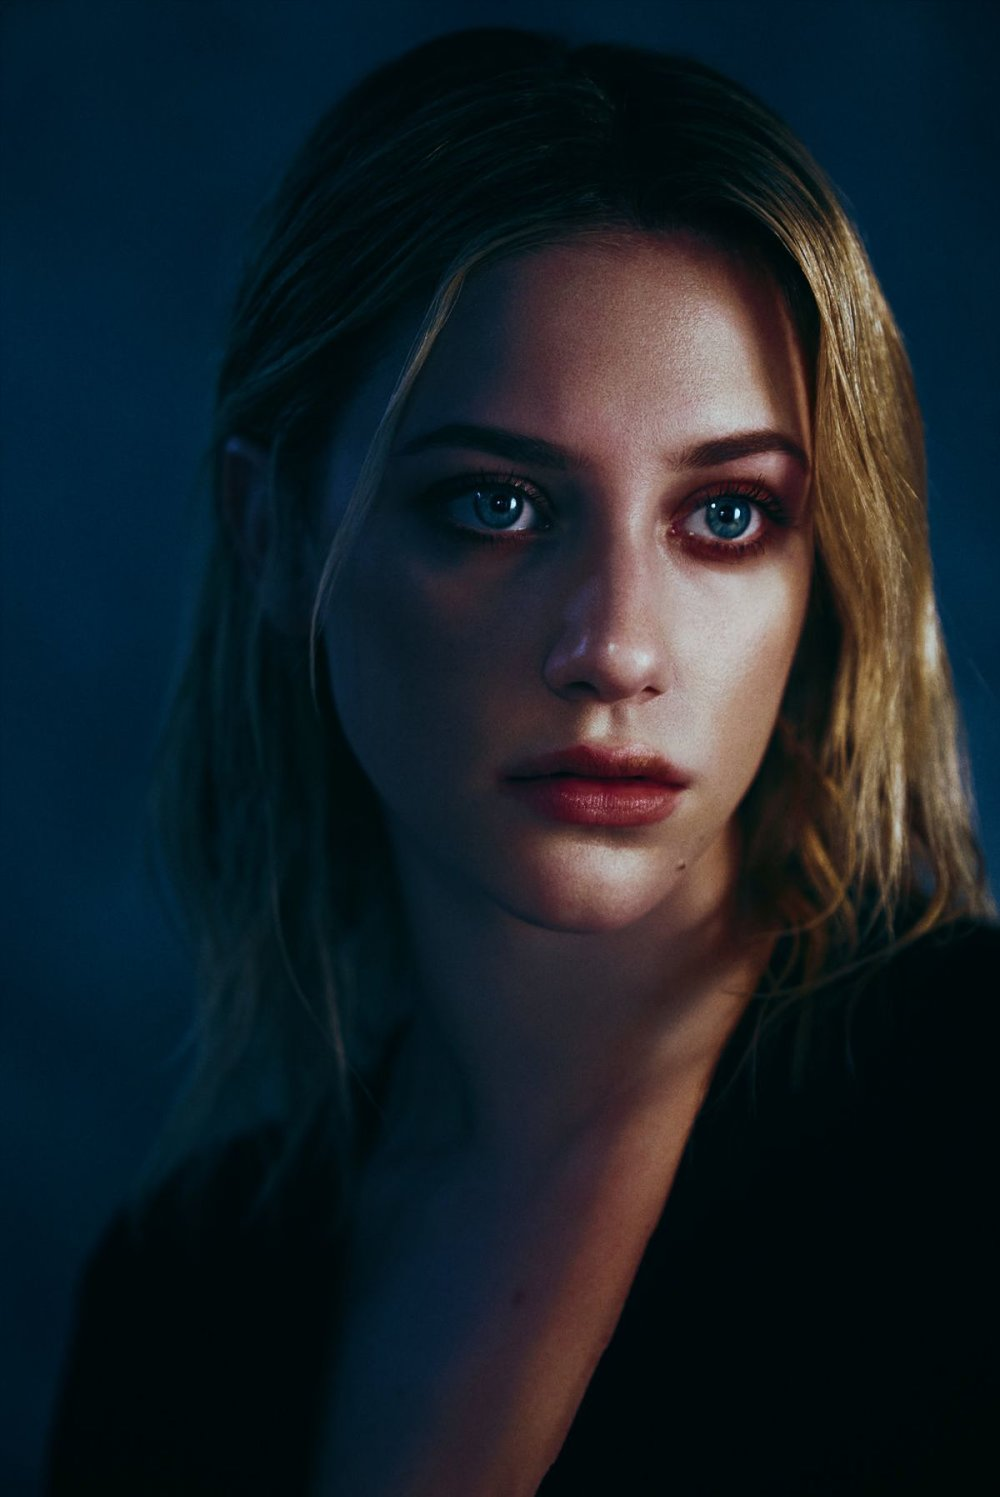 lili-reinhart-for-the-laterals-2017-3.jpg